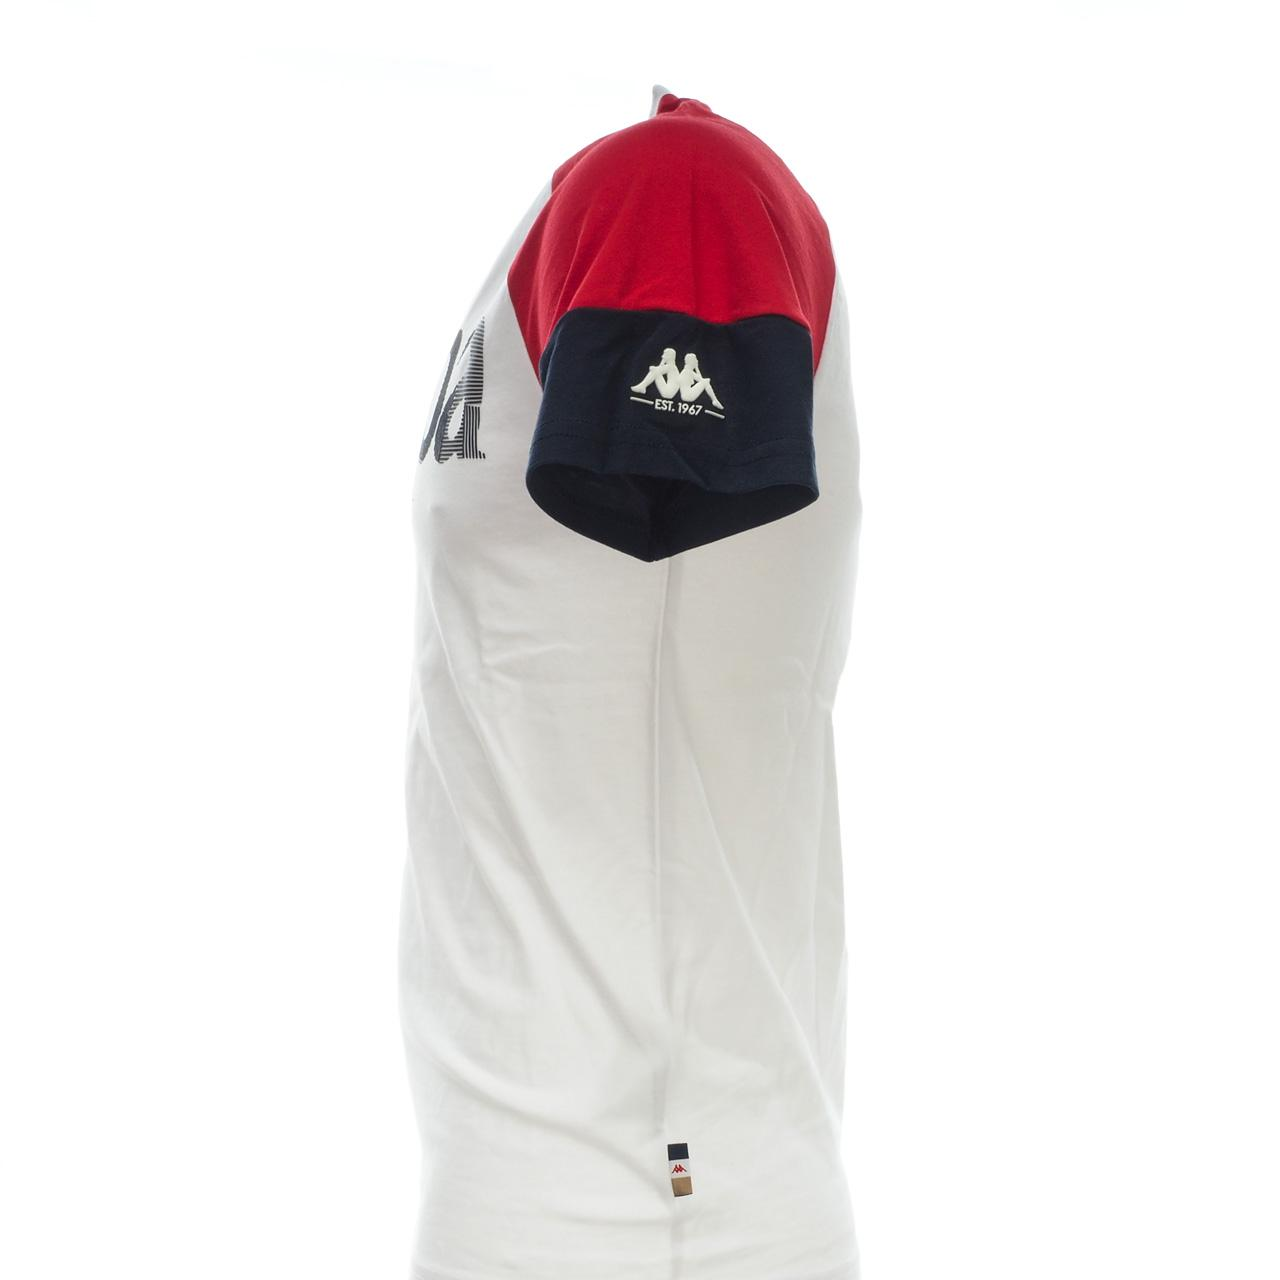 Short-Sleeve-T-Shirt-Kappa-Irmiou-Red-White-Navy-White-46521-New thumbnail 3